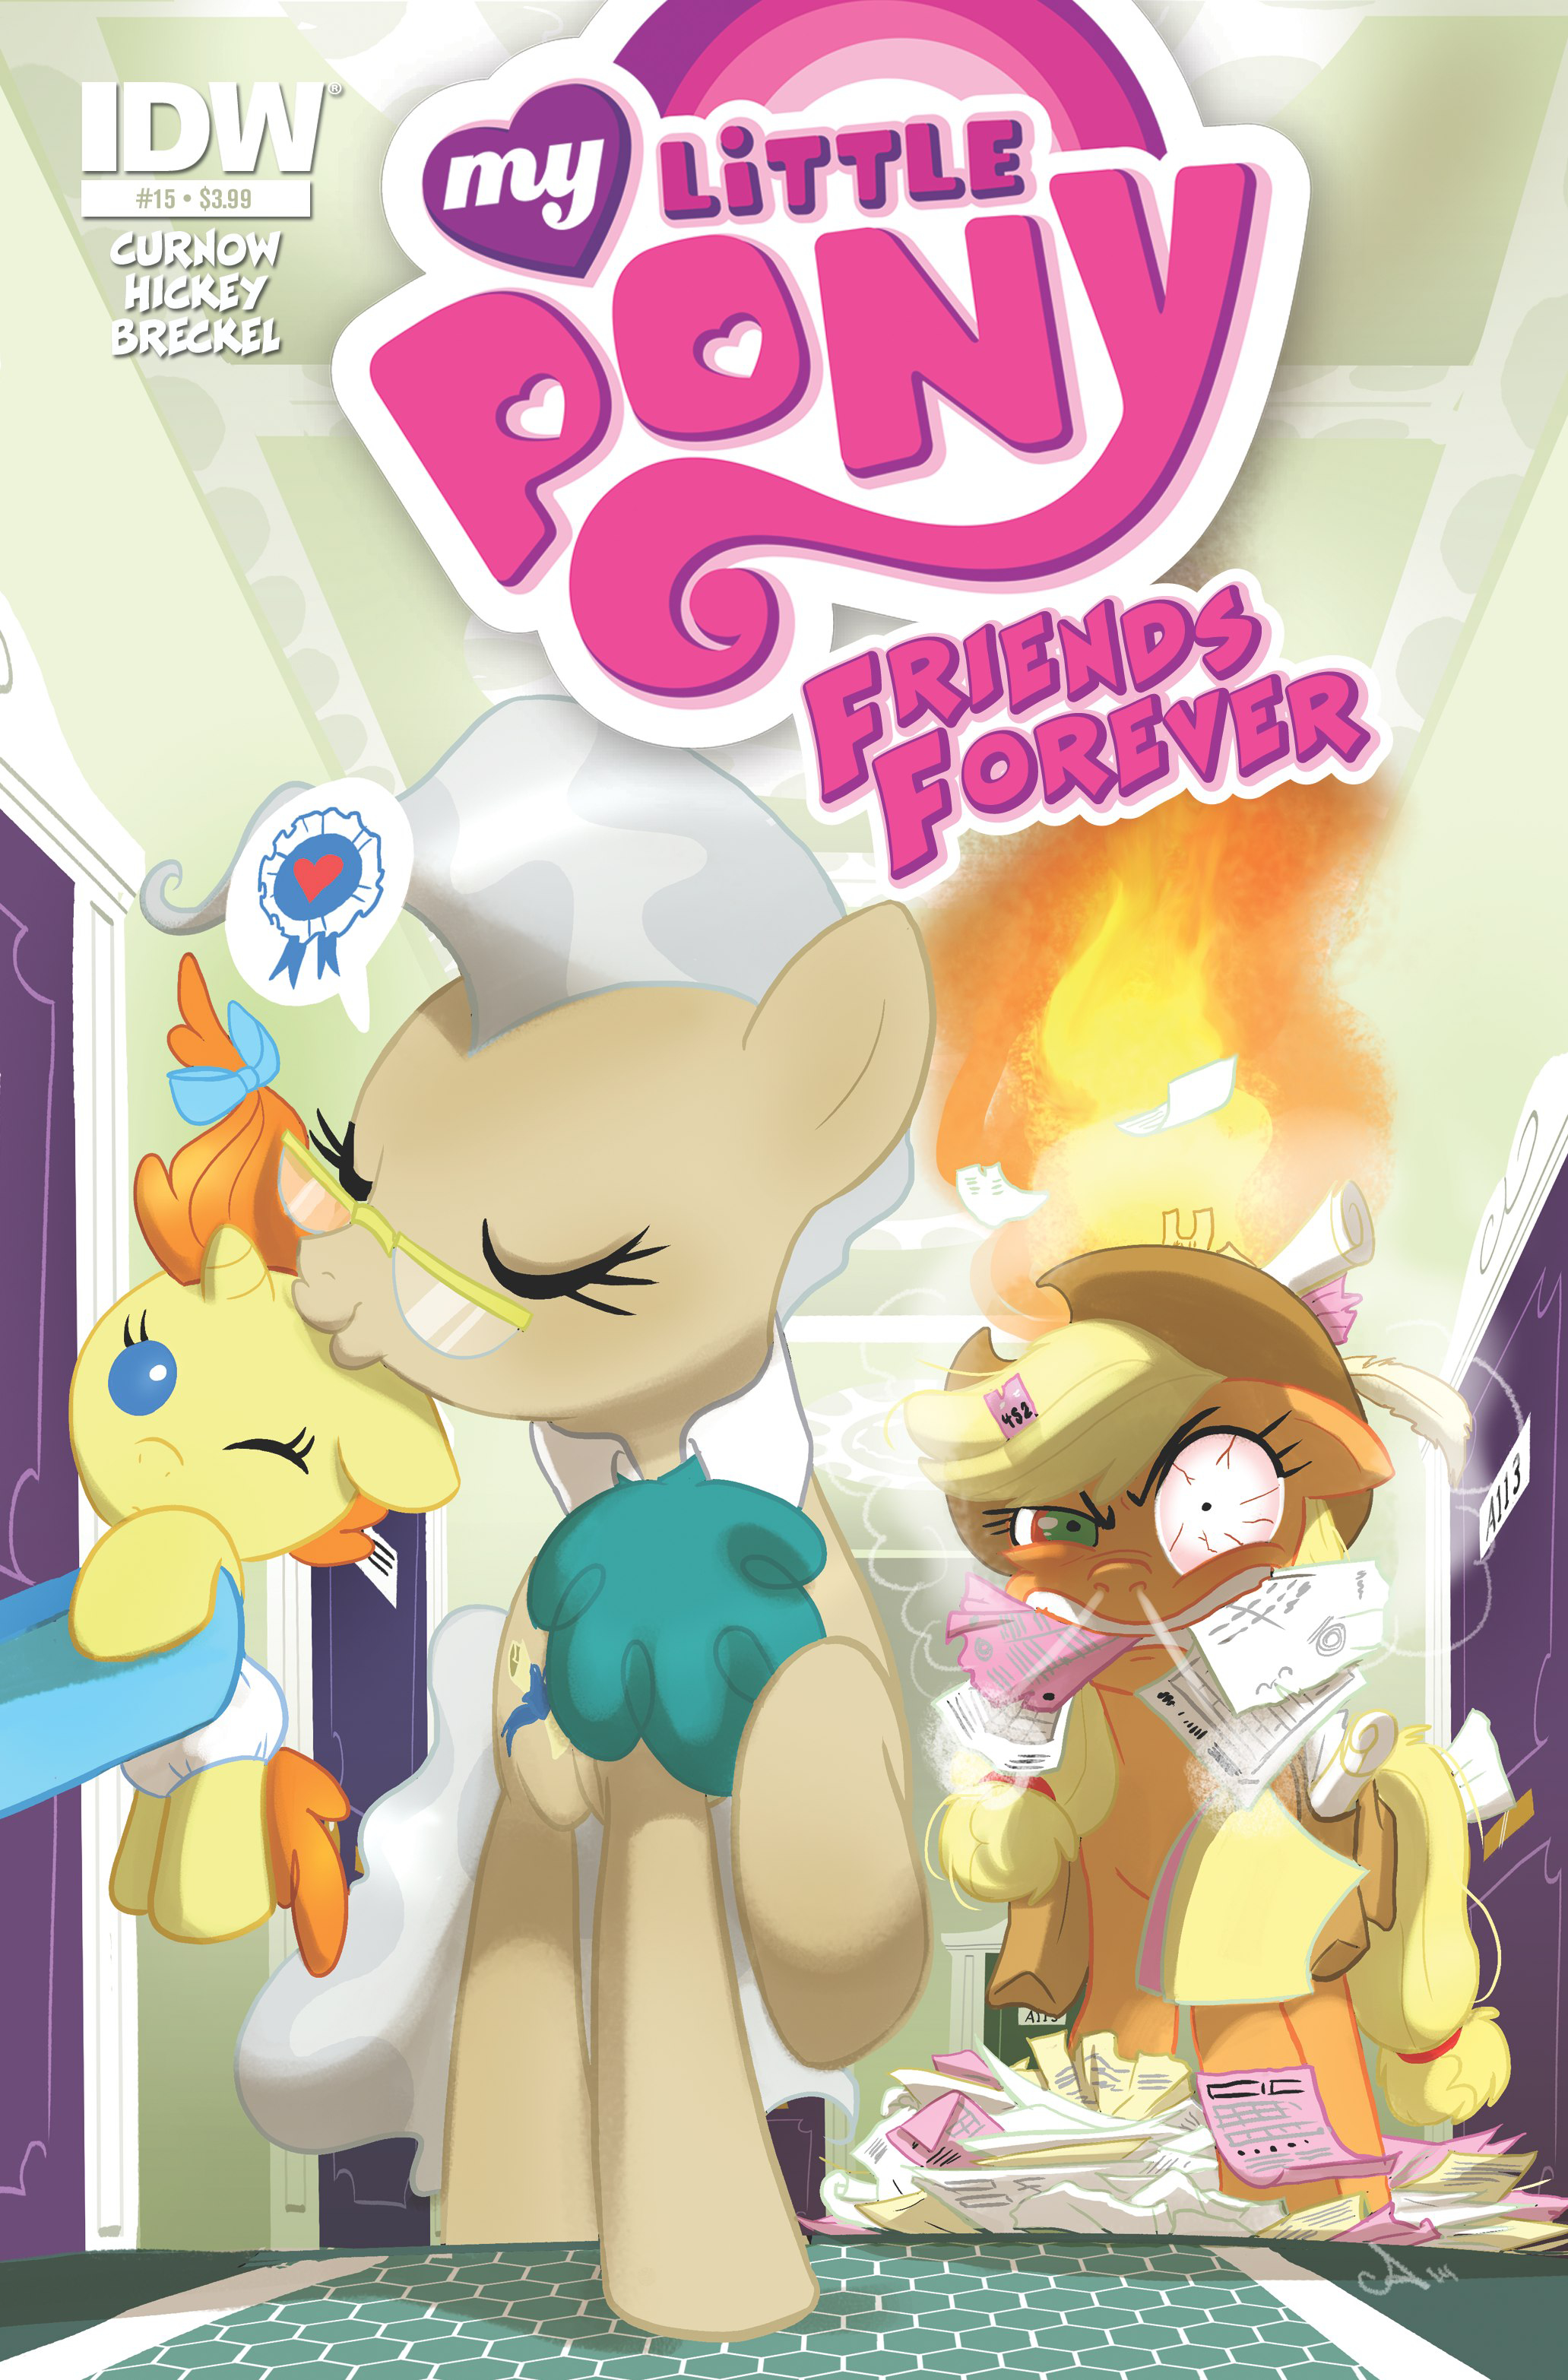 MY LITTLE PONY FRIENDS FOREVER #15